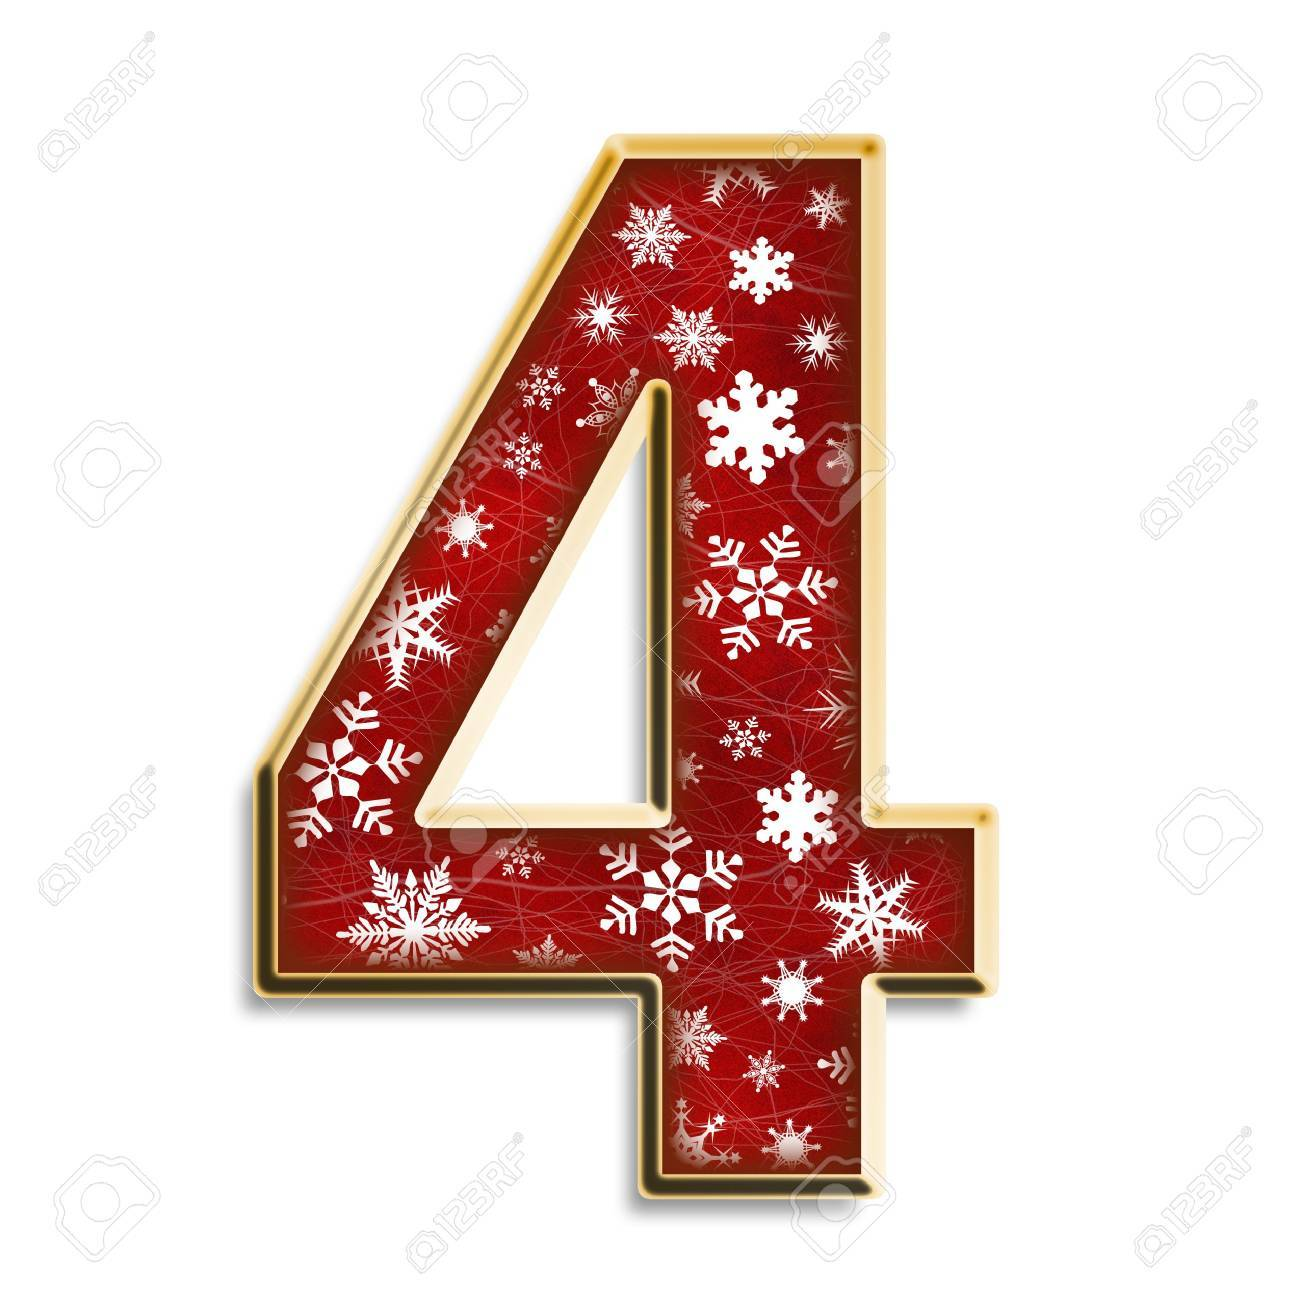 White snowflakes on red with gold number four isolated on white Stock Photo - 3425023